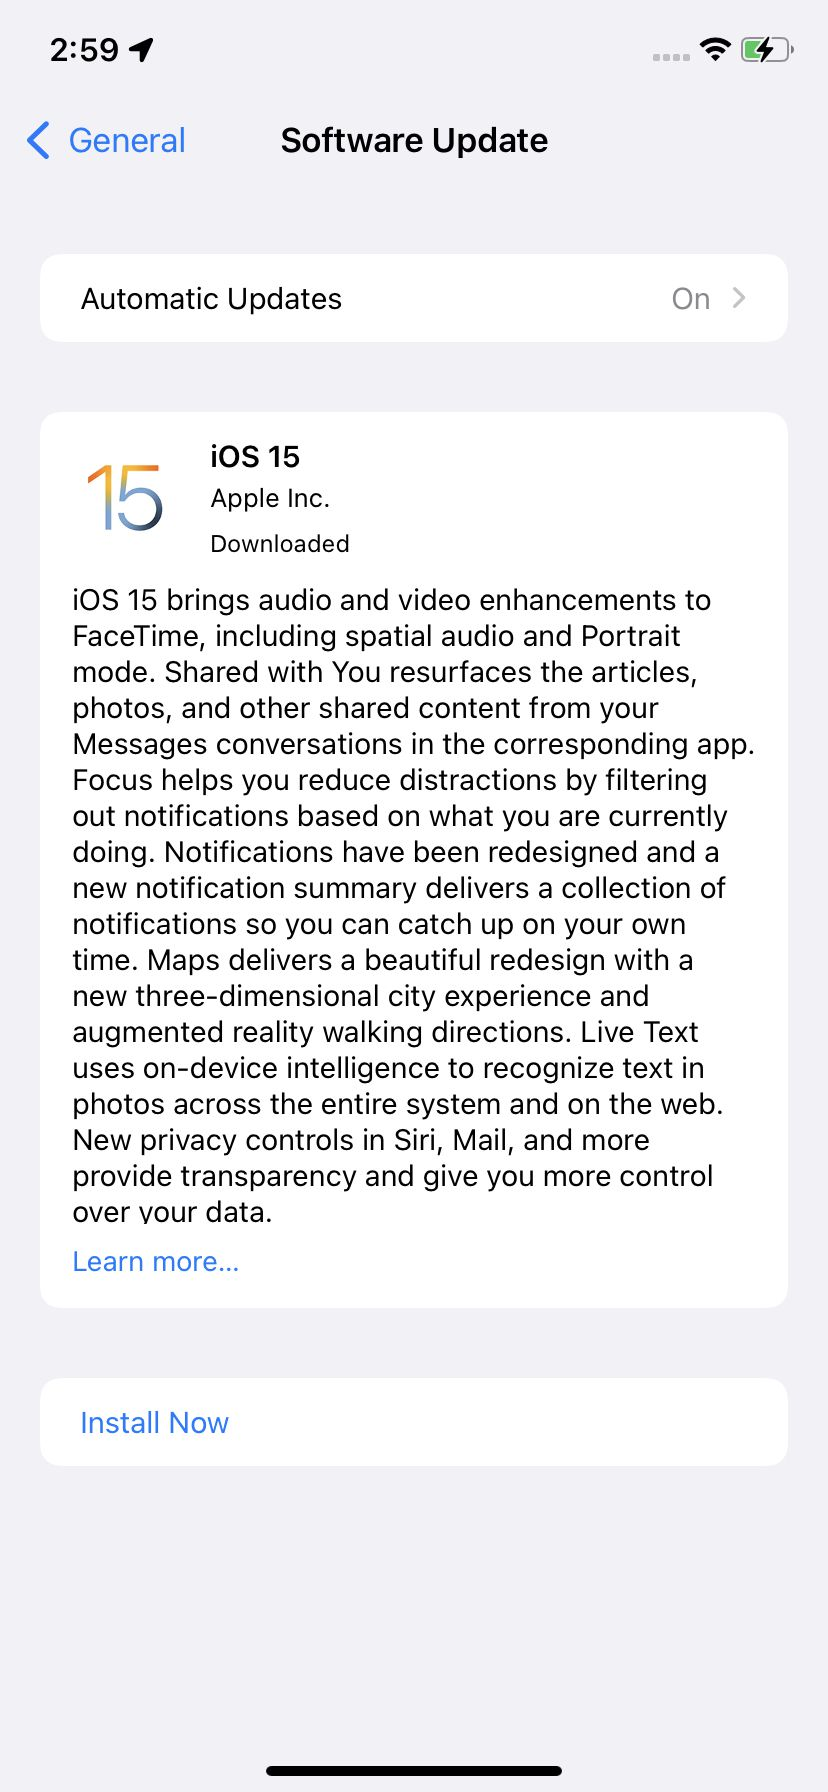 Your update to iOS 15 may be waiting for you.